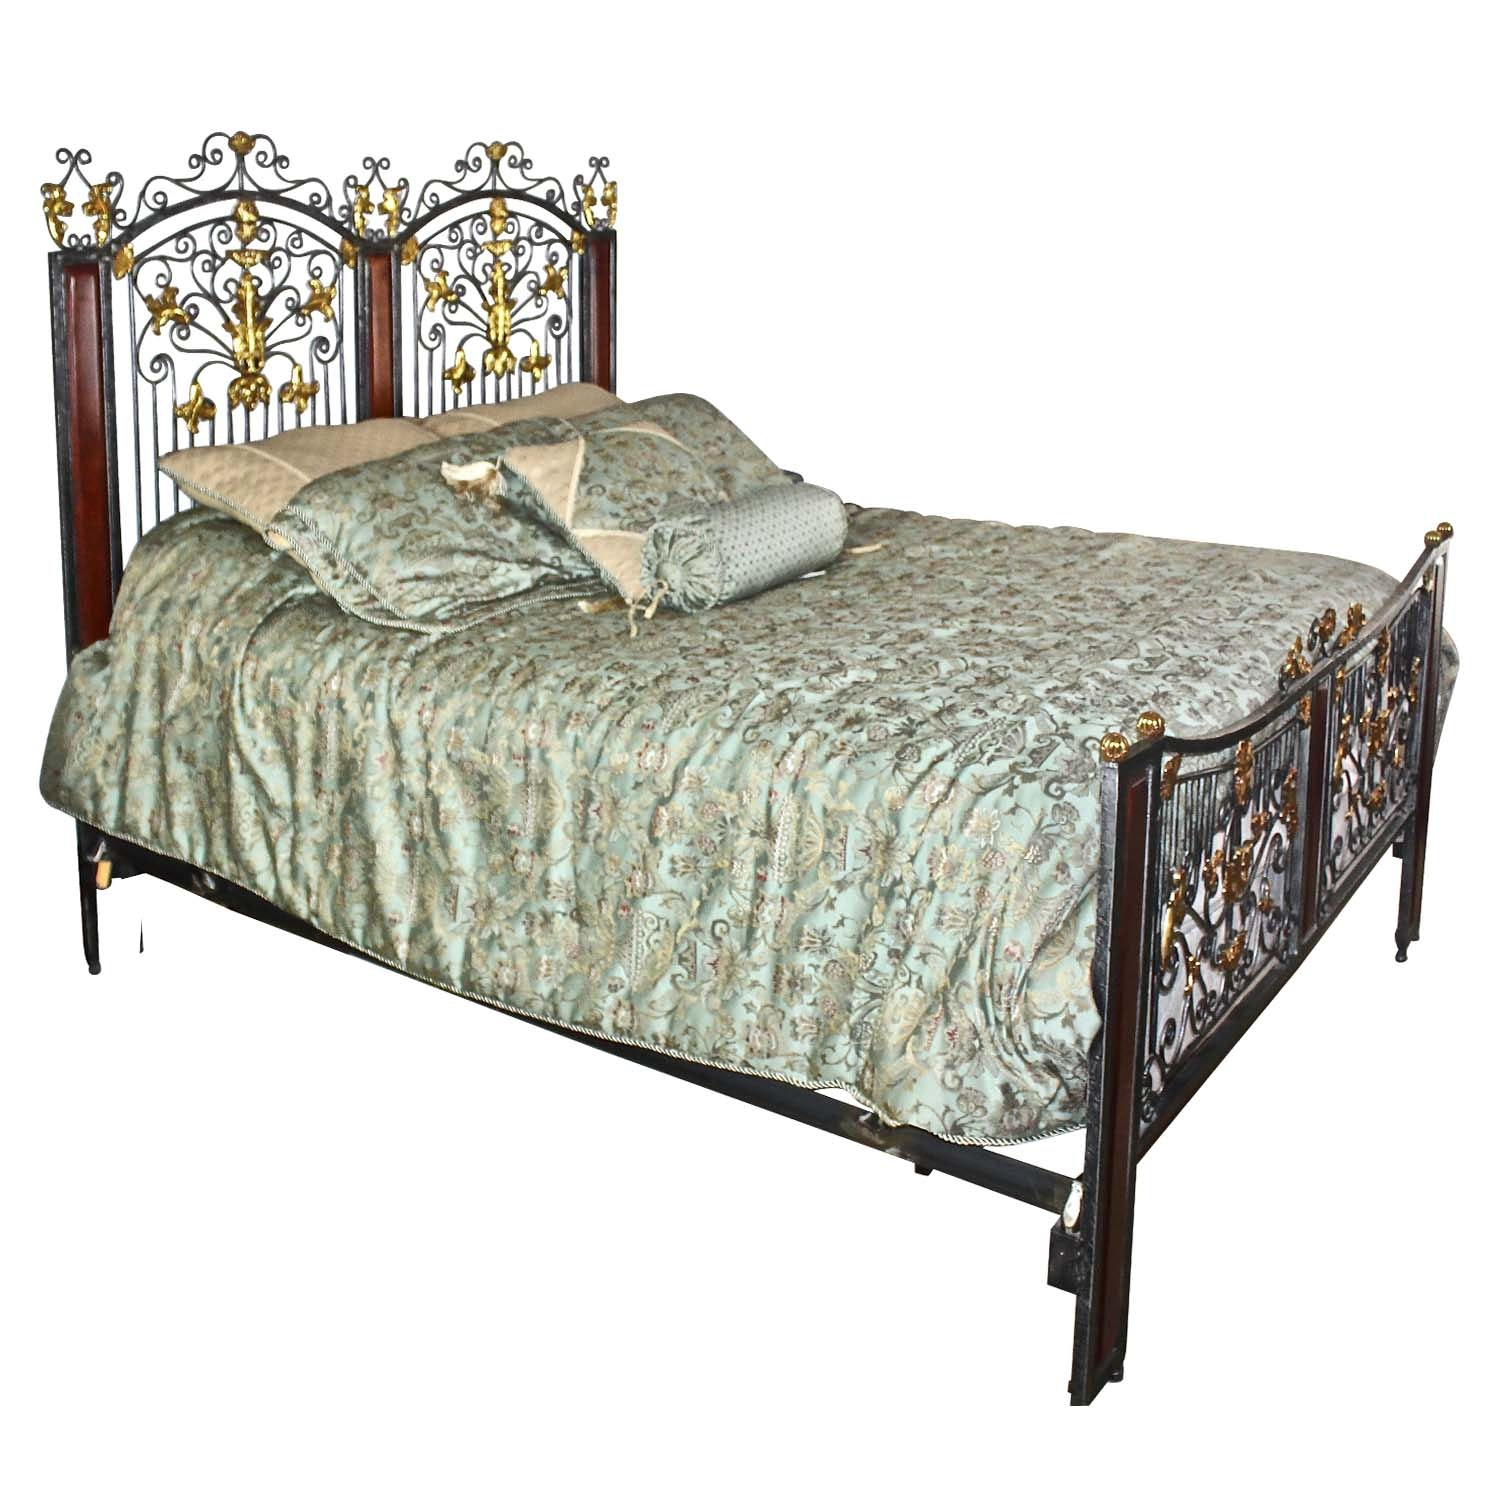 Vintage Iron and Wooden Queen Bed Frame